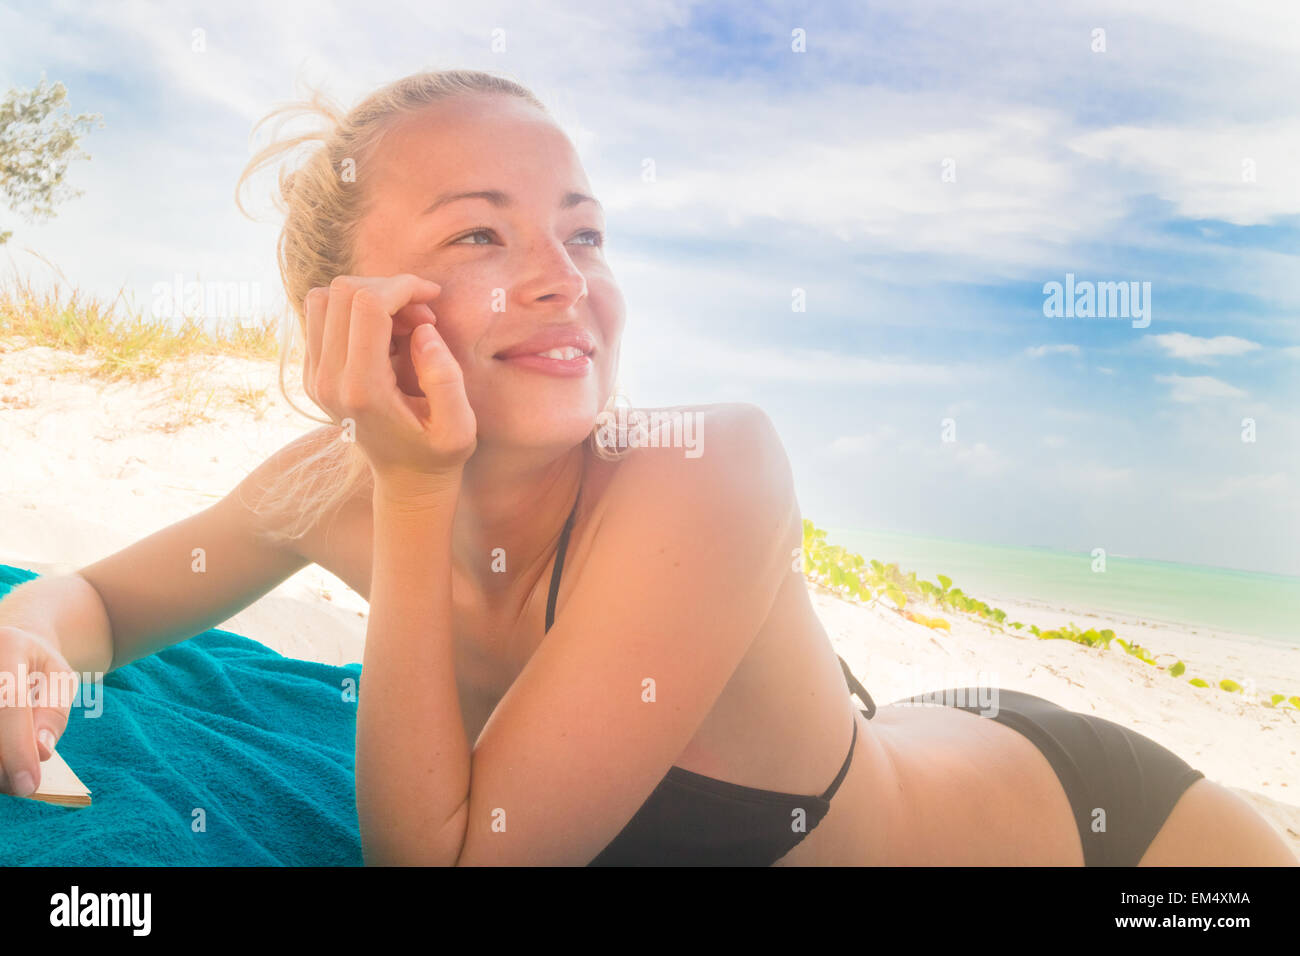 Happy woman in bikini sur la plage. Photo Stock